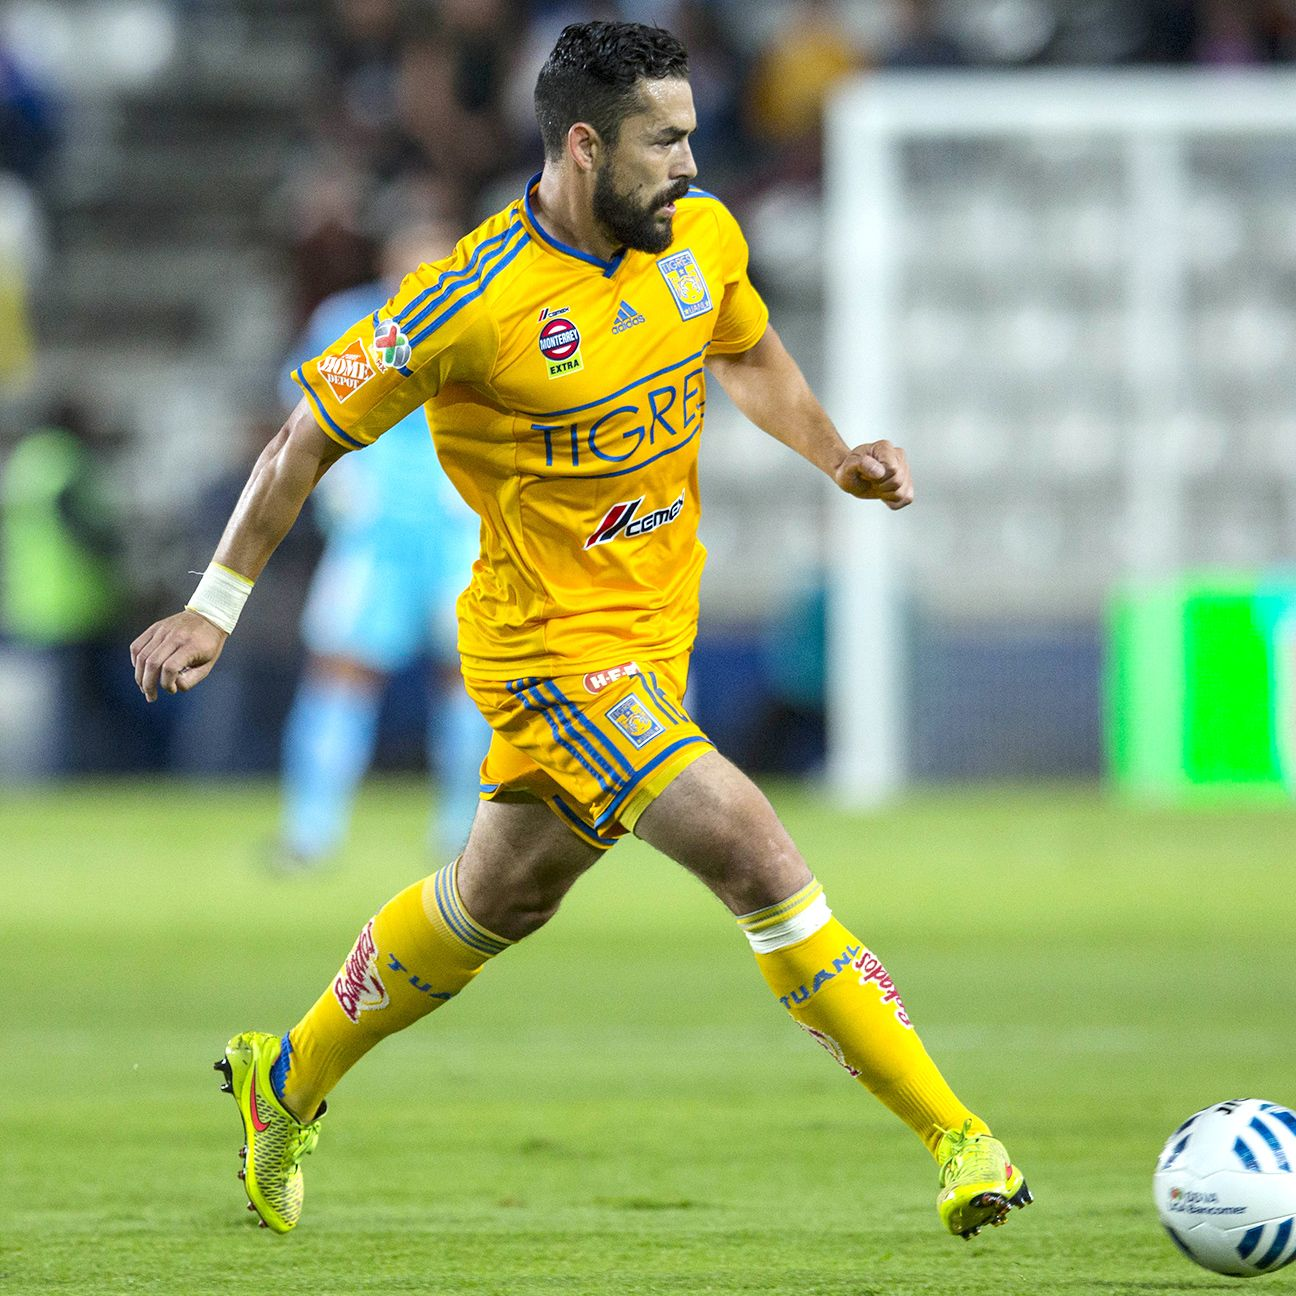 After winning the 2012 Clausura with Santos, Herculez Gomez will be looking to claim his second Liga MX title on Sunday with Tigres.